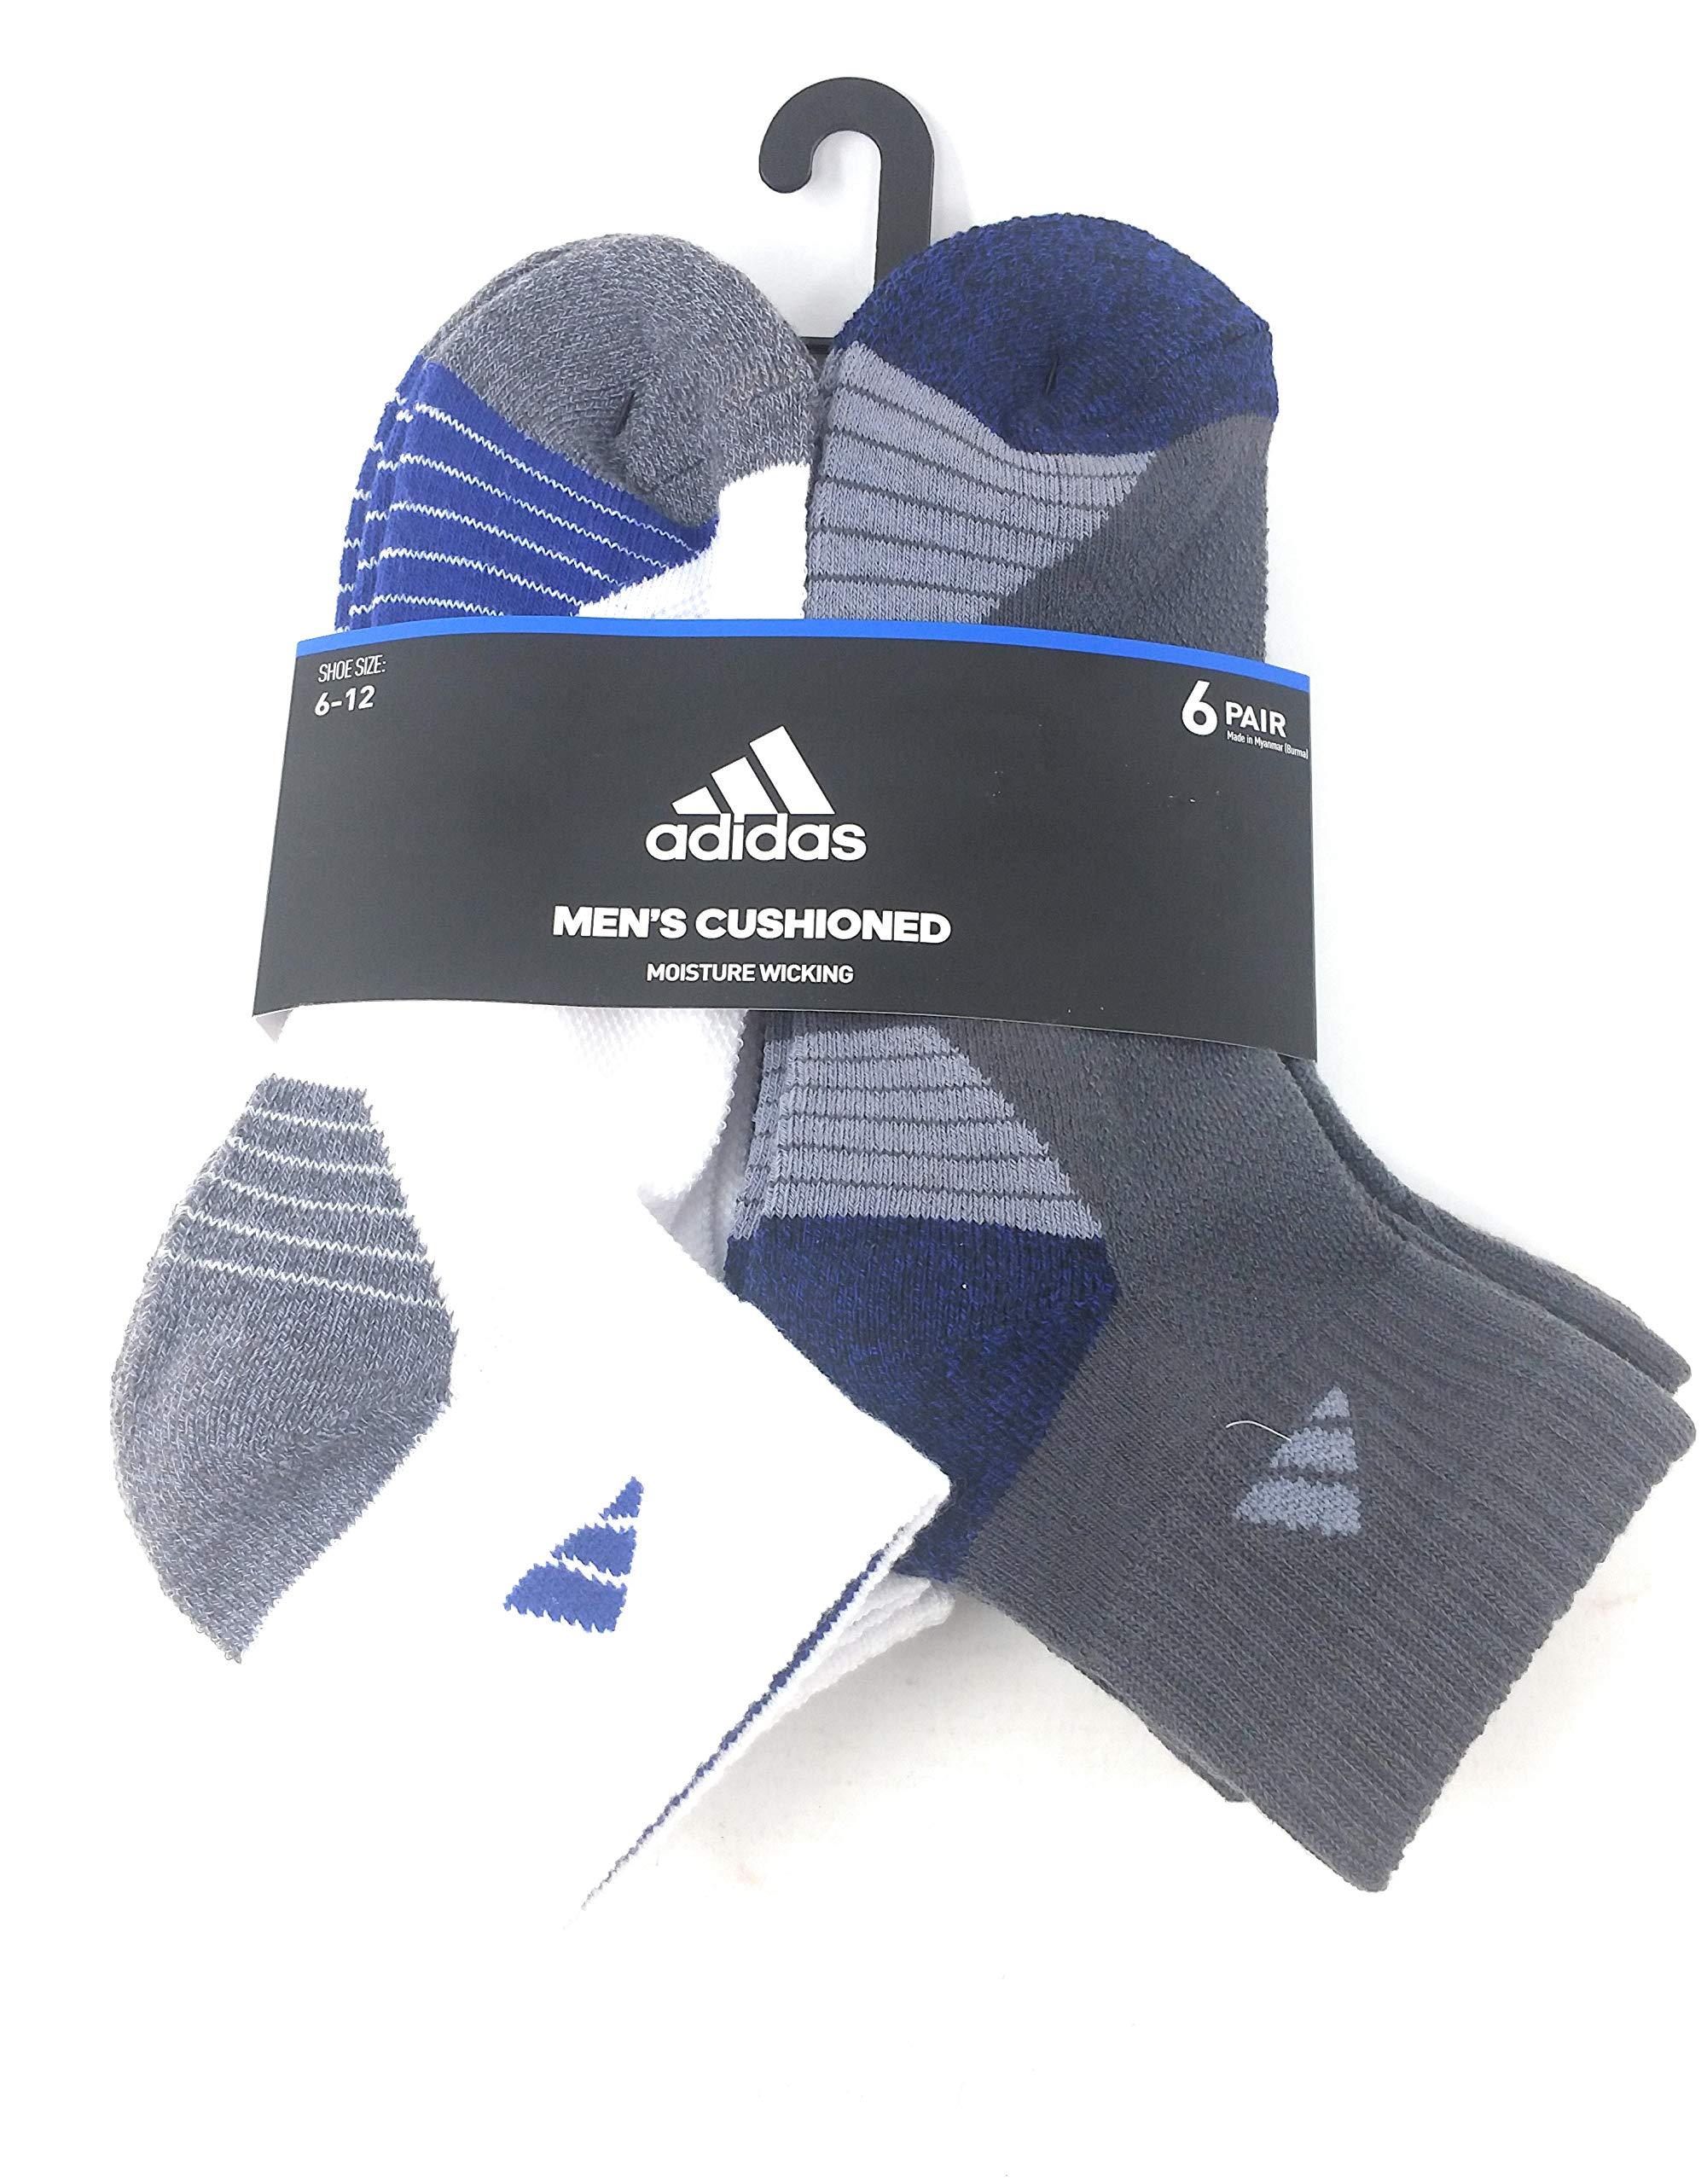 Adidas Men's Cusioned Socks, Moisure Wicking, Ankle Socks, 6-Pack, Size 6-12